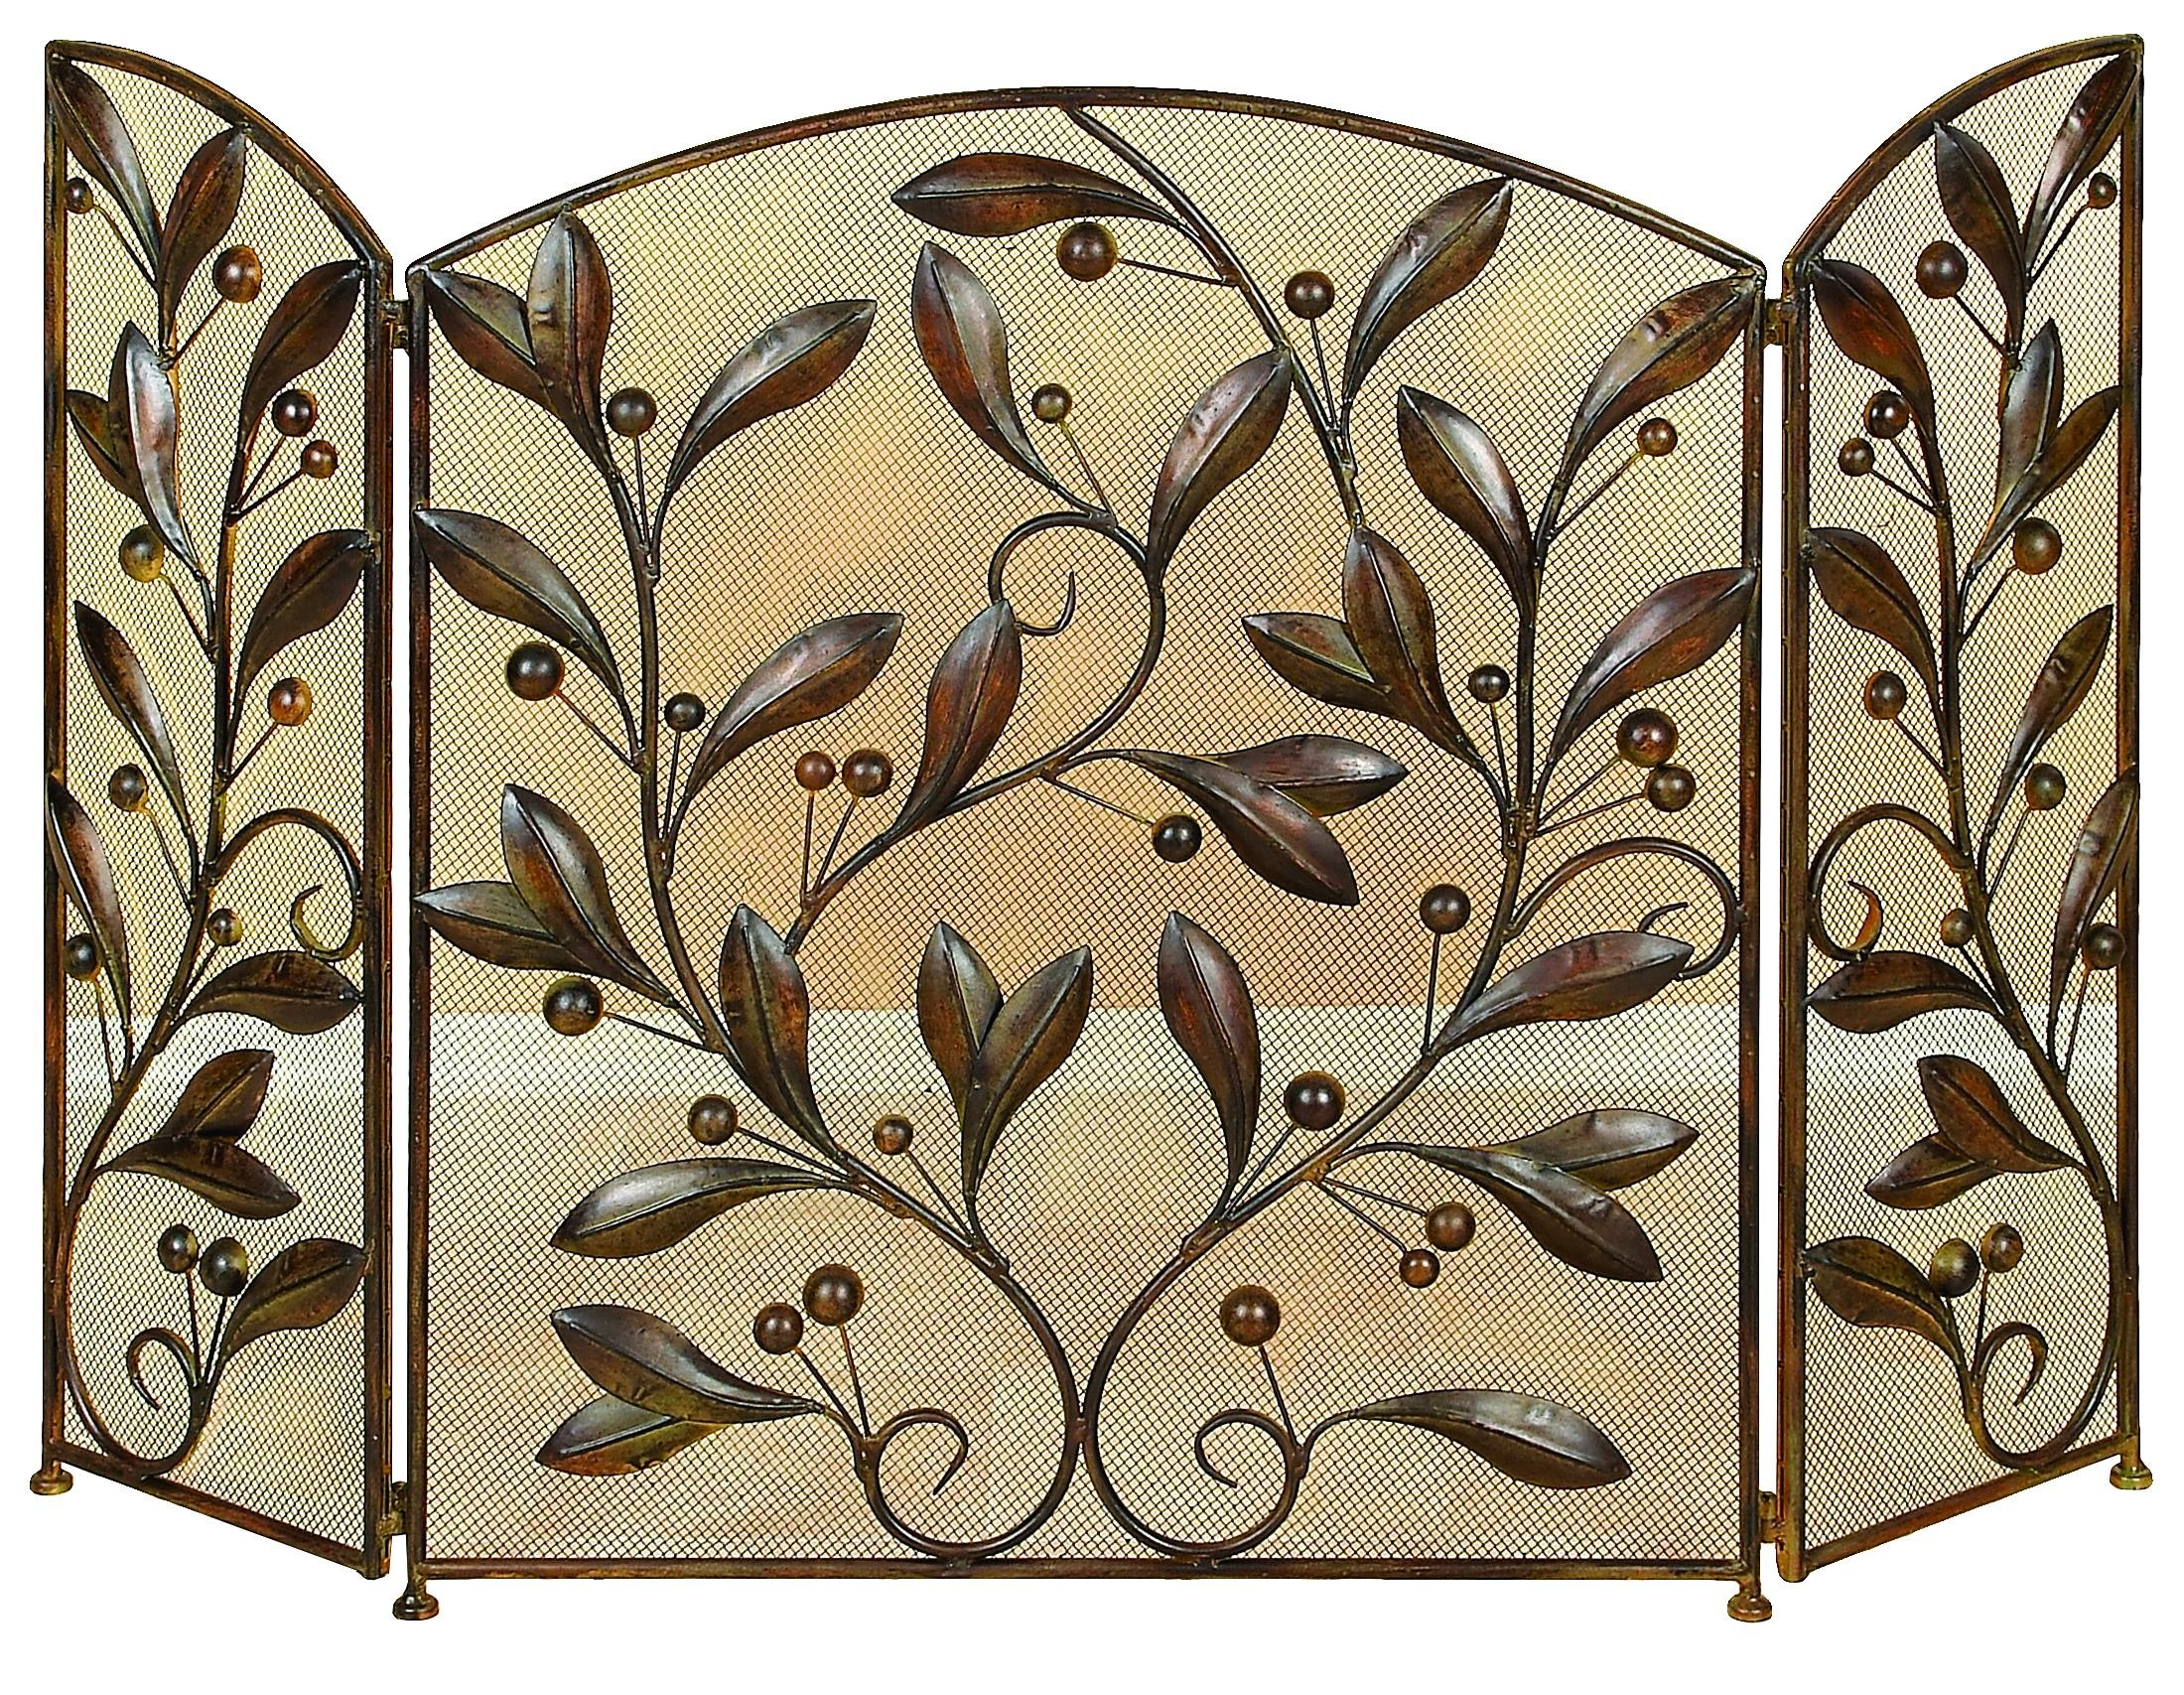 Deco 79 71889 Metal Fire Screen, 48''W x 30''H by Deco 79